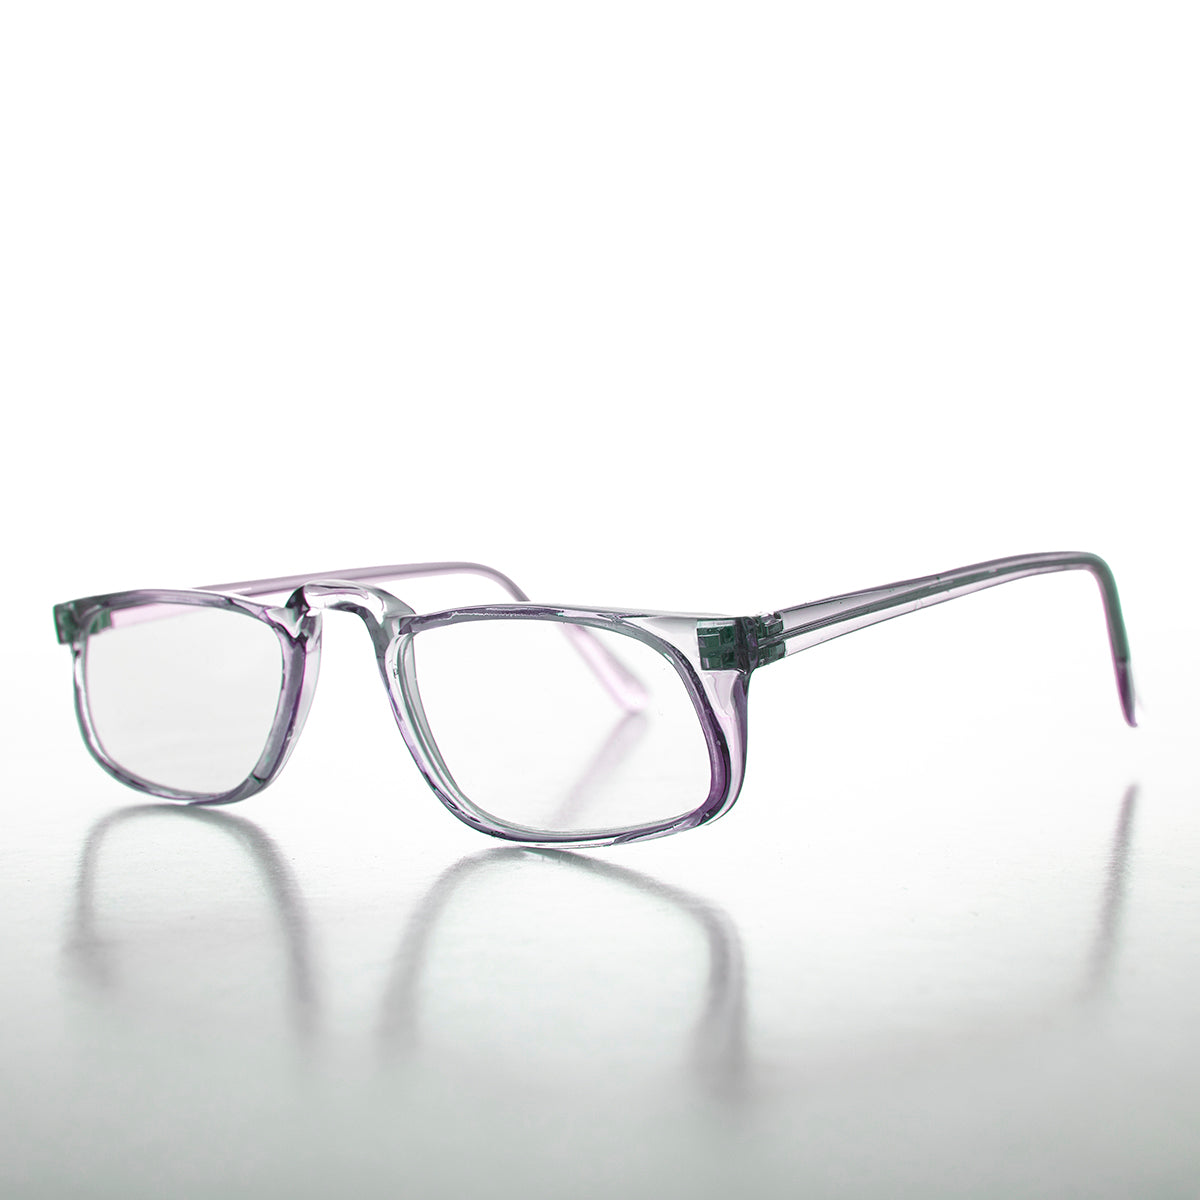 Half-Frame Classic Reading Glasses 90s Vintage - Annie